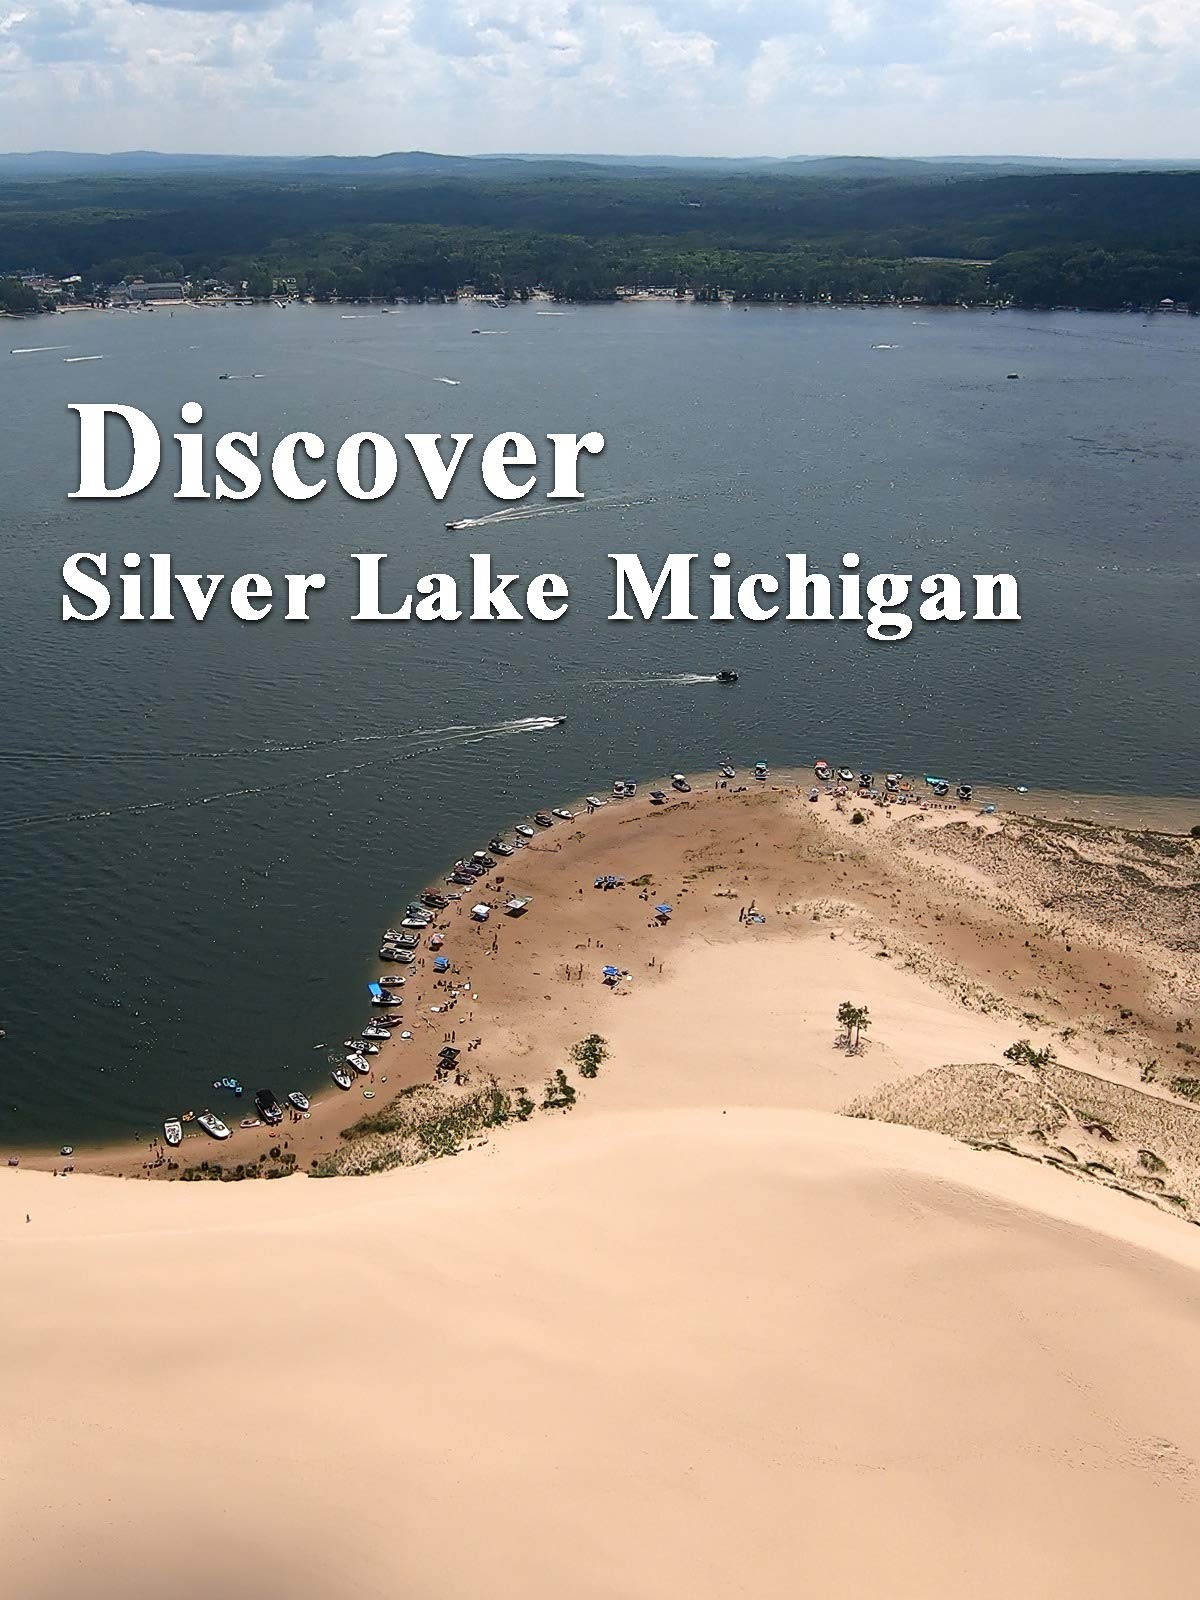 Discover Silver Lake Michigan